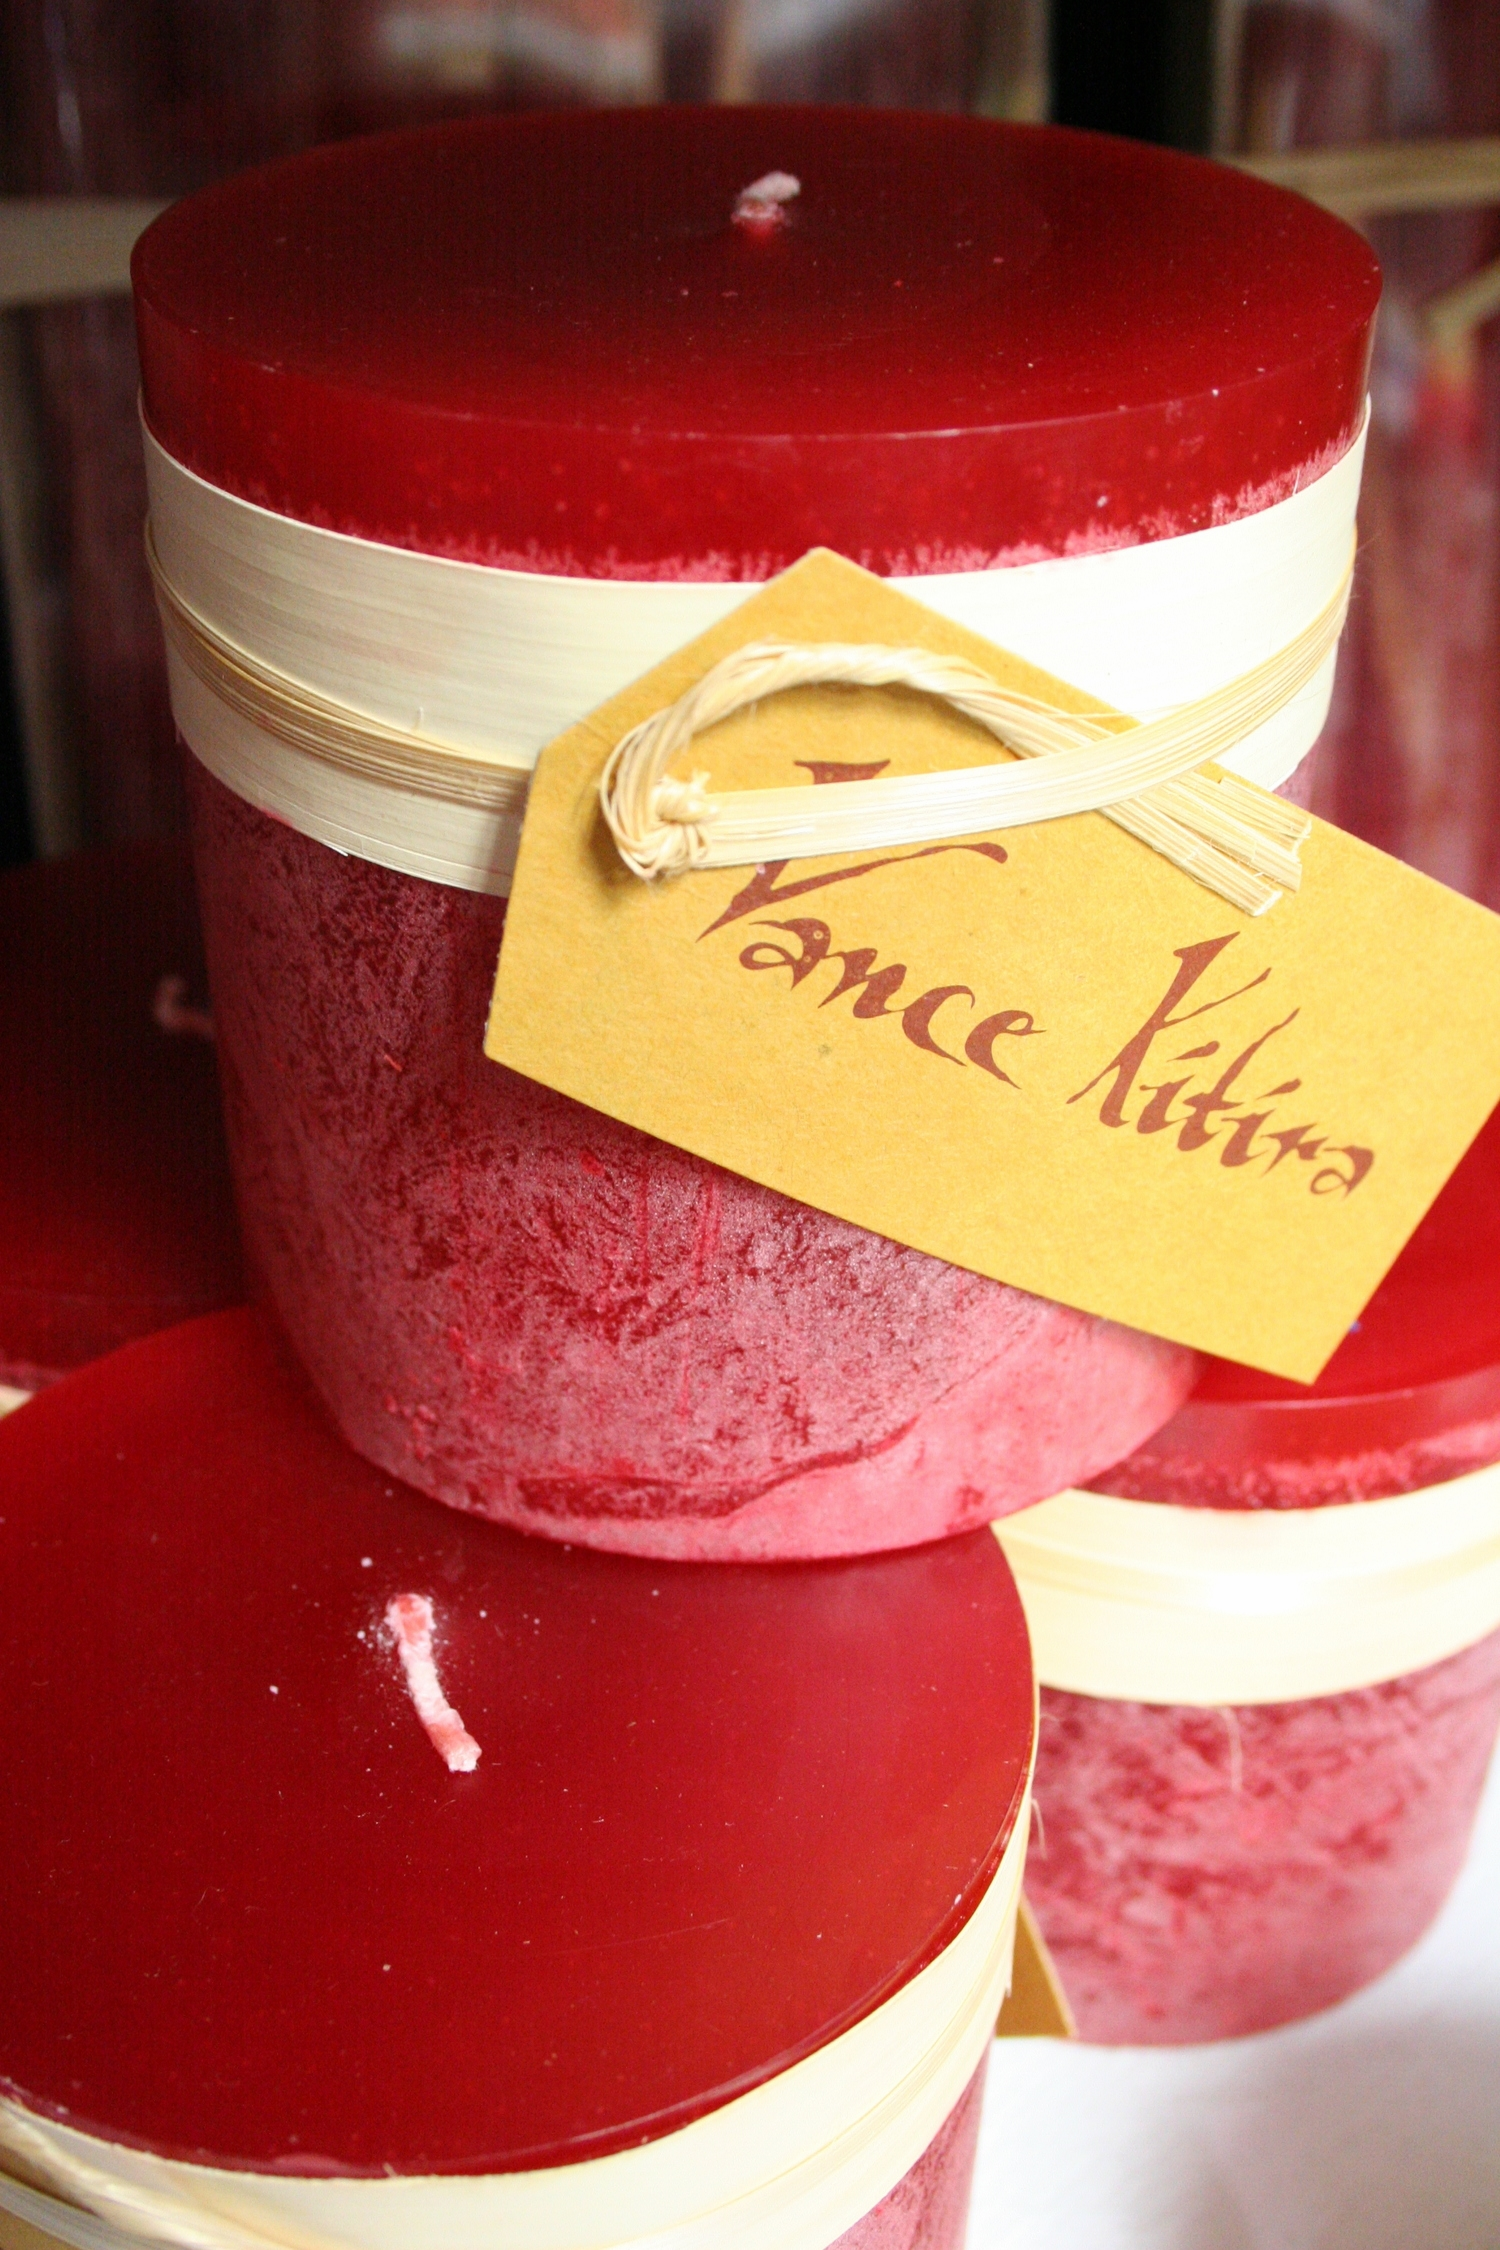 Red Vance Kitira candles on white shelf with brown label